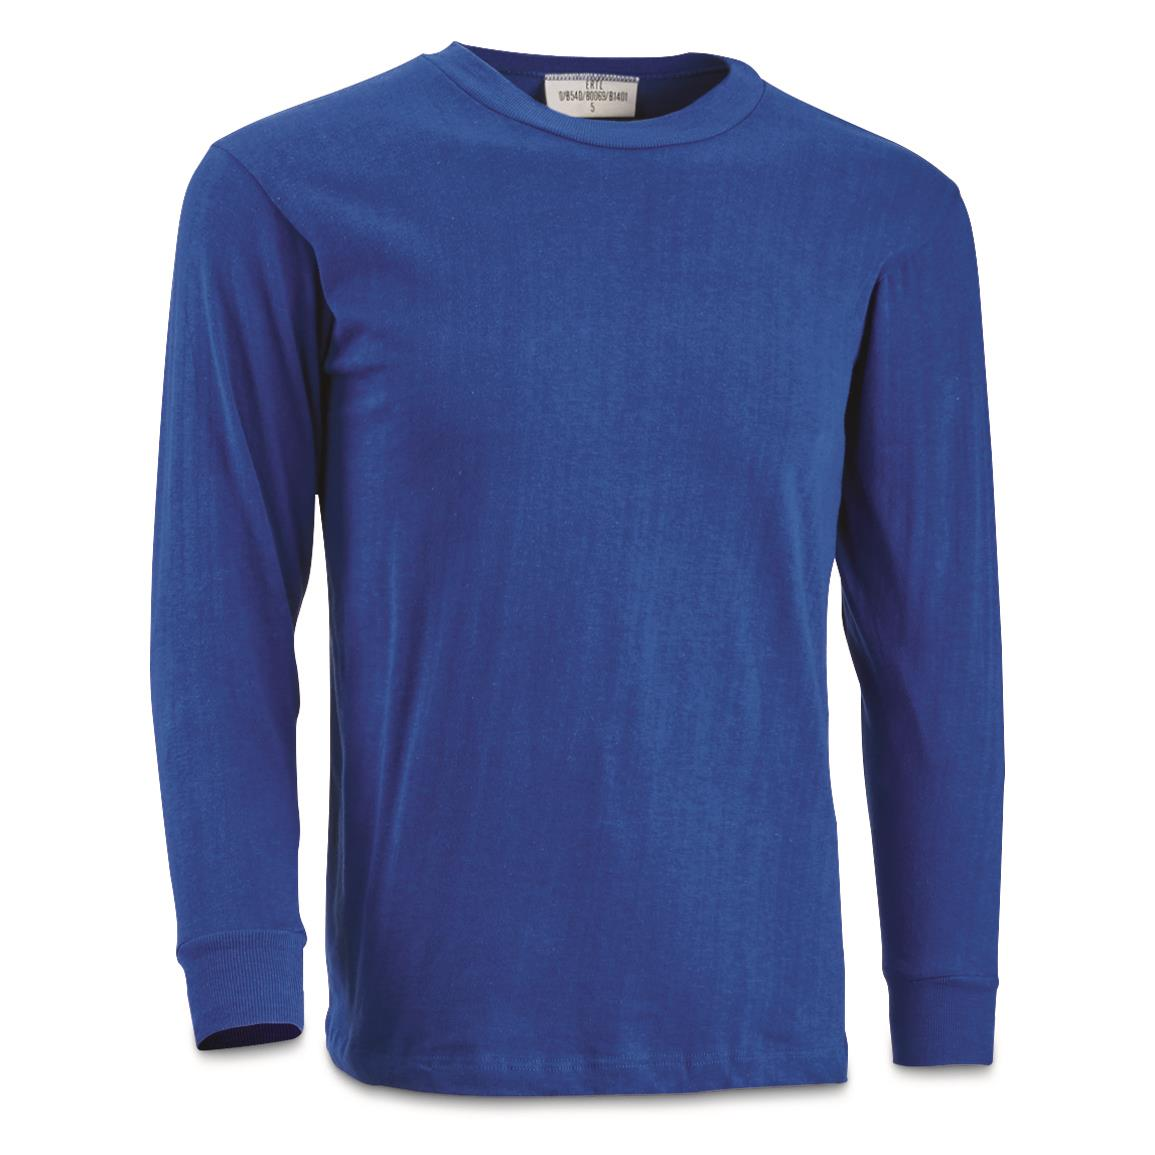 German Military Surplus Marine Long Sleeve Shirts, 2 Pack, New, Blue